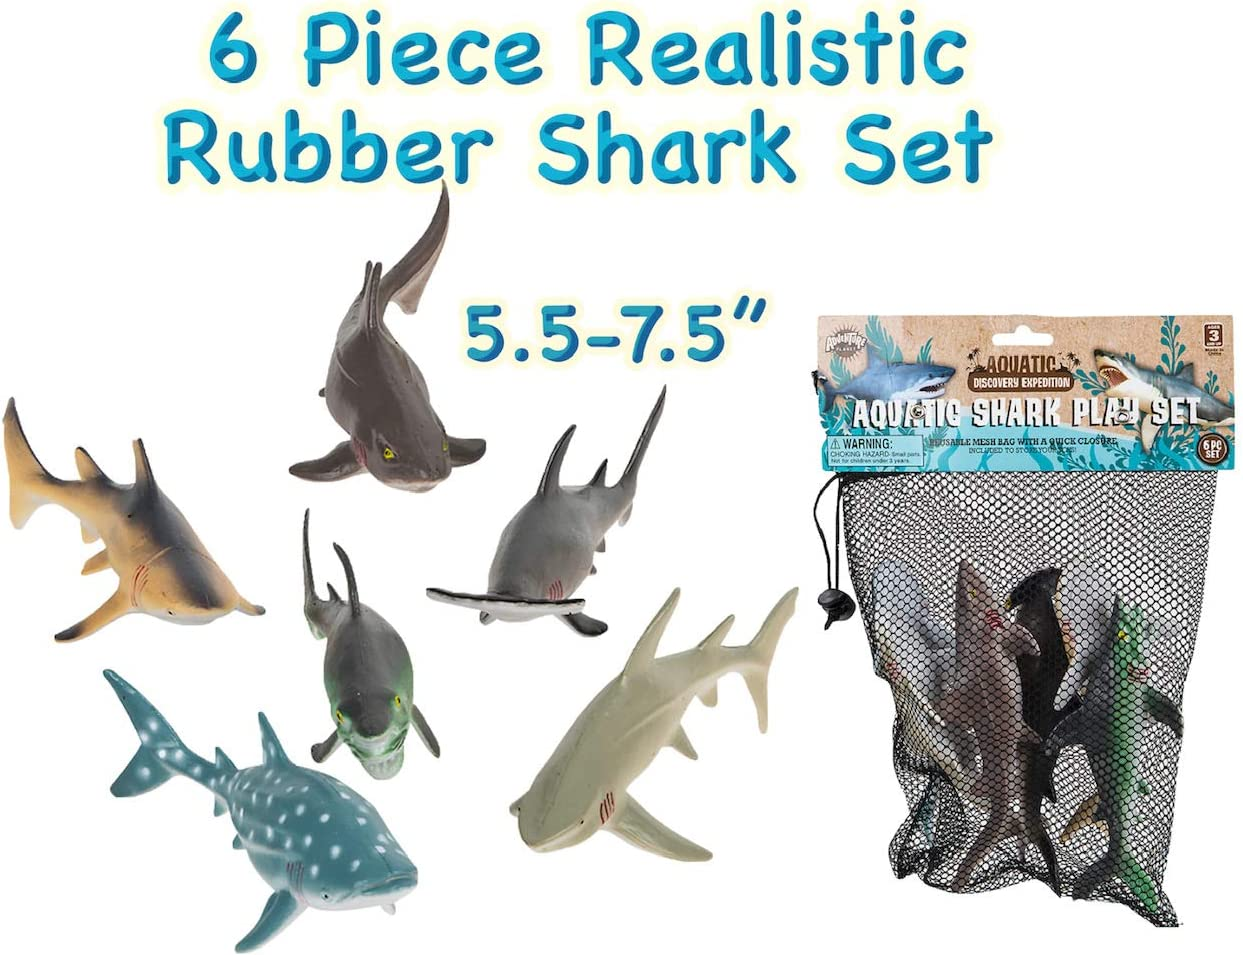 "HOWBOUTDIS (6) Piece Shark Set – Realistic Looking Ocean Sharks – Great for Party Favors, Bath Time, Shark Week – Reusable Mesh Bag – Measuring 5.5 – 7.5""."